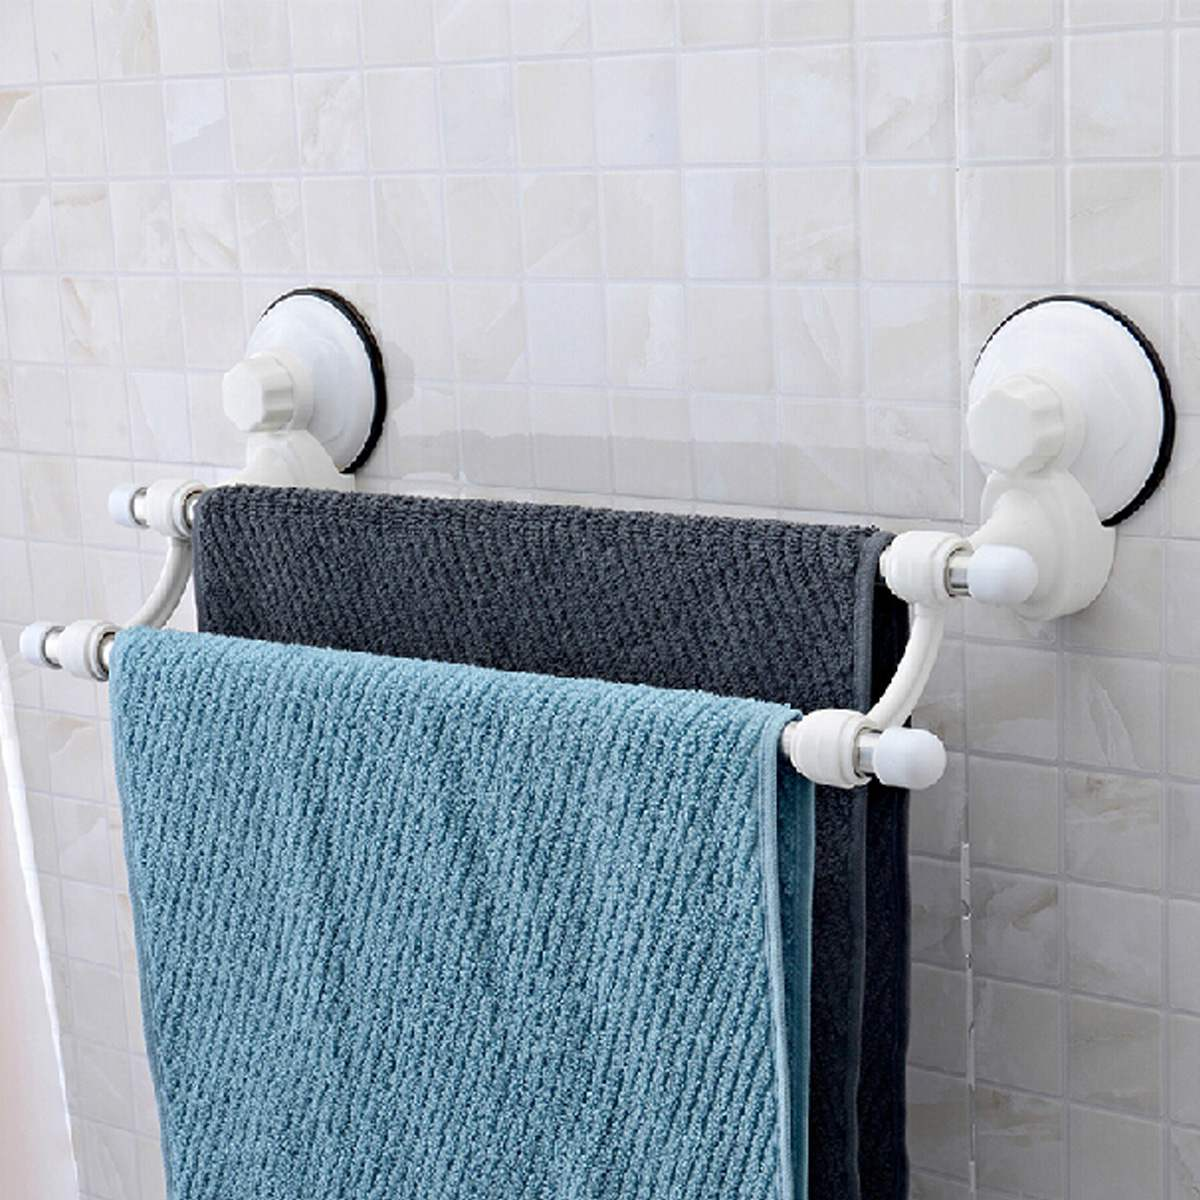 Wall Mounted Stainless Steel 2 Bars Towels Rail Holder Storage Racks Shelf Stand Kitchen Bathroom Hotel Suction Cup Organizer